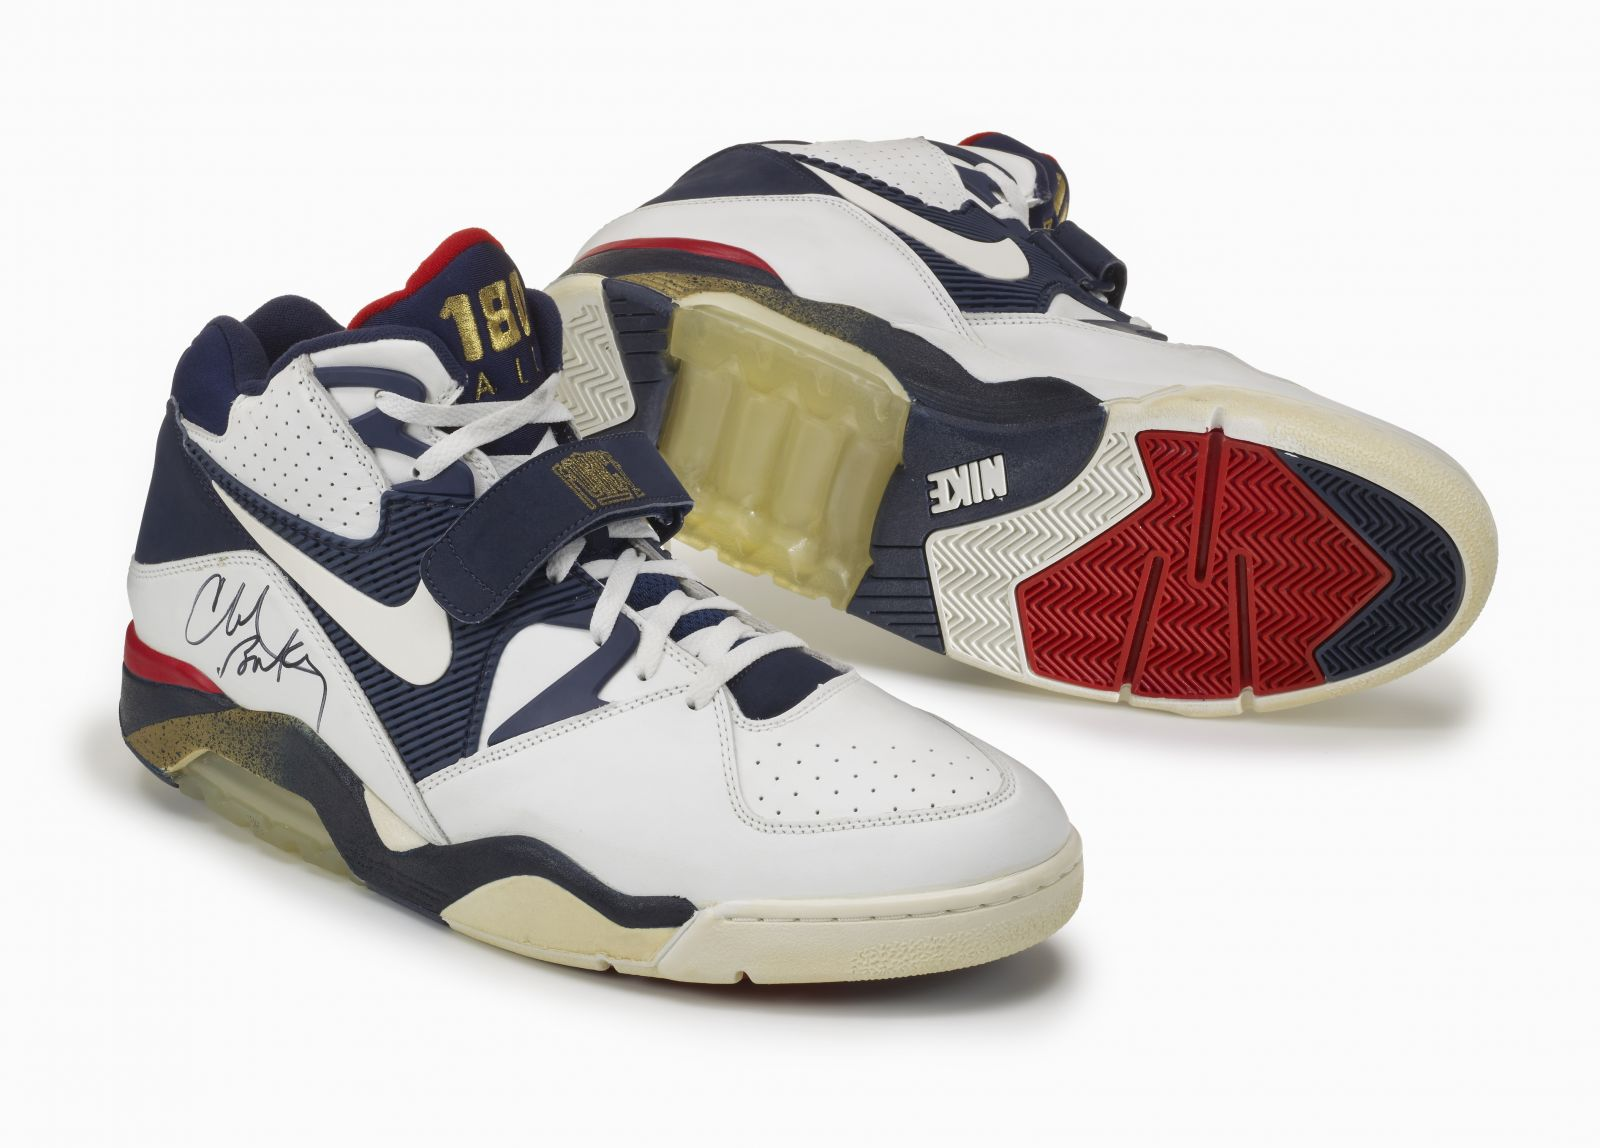 sports shoes d1ff8 659b3 Take a closer look at Sir Charles' Olympic Air Force 180, along with design  sketches by Steve McDonald in the images below.